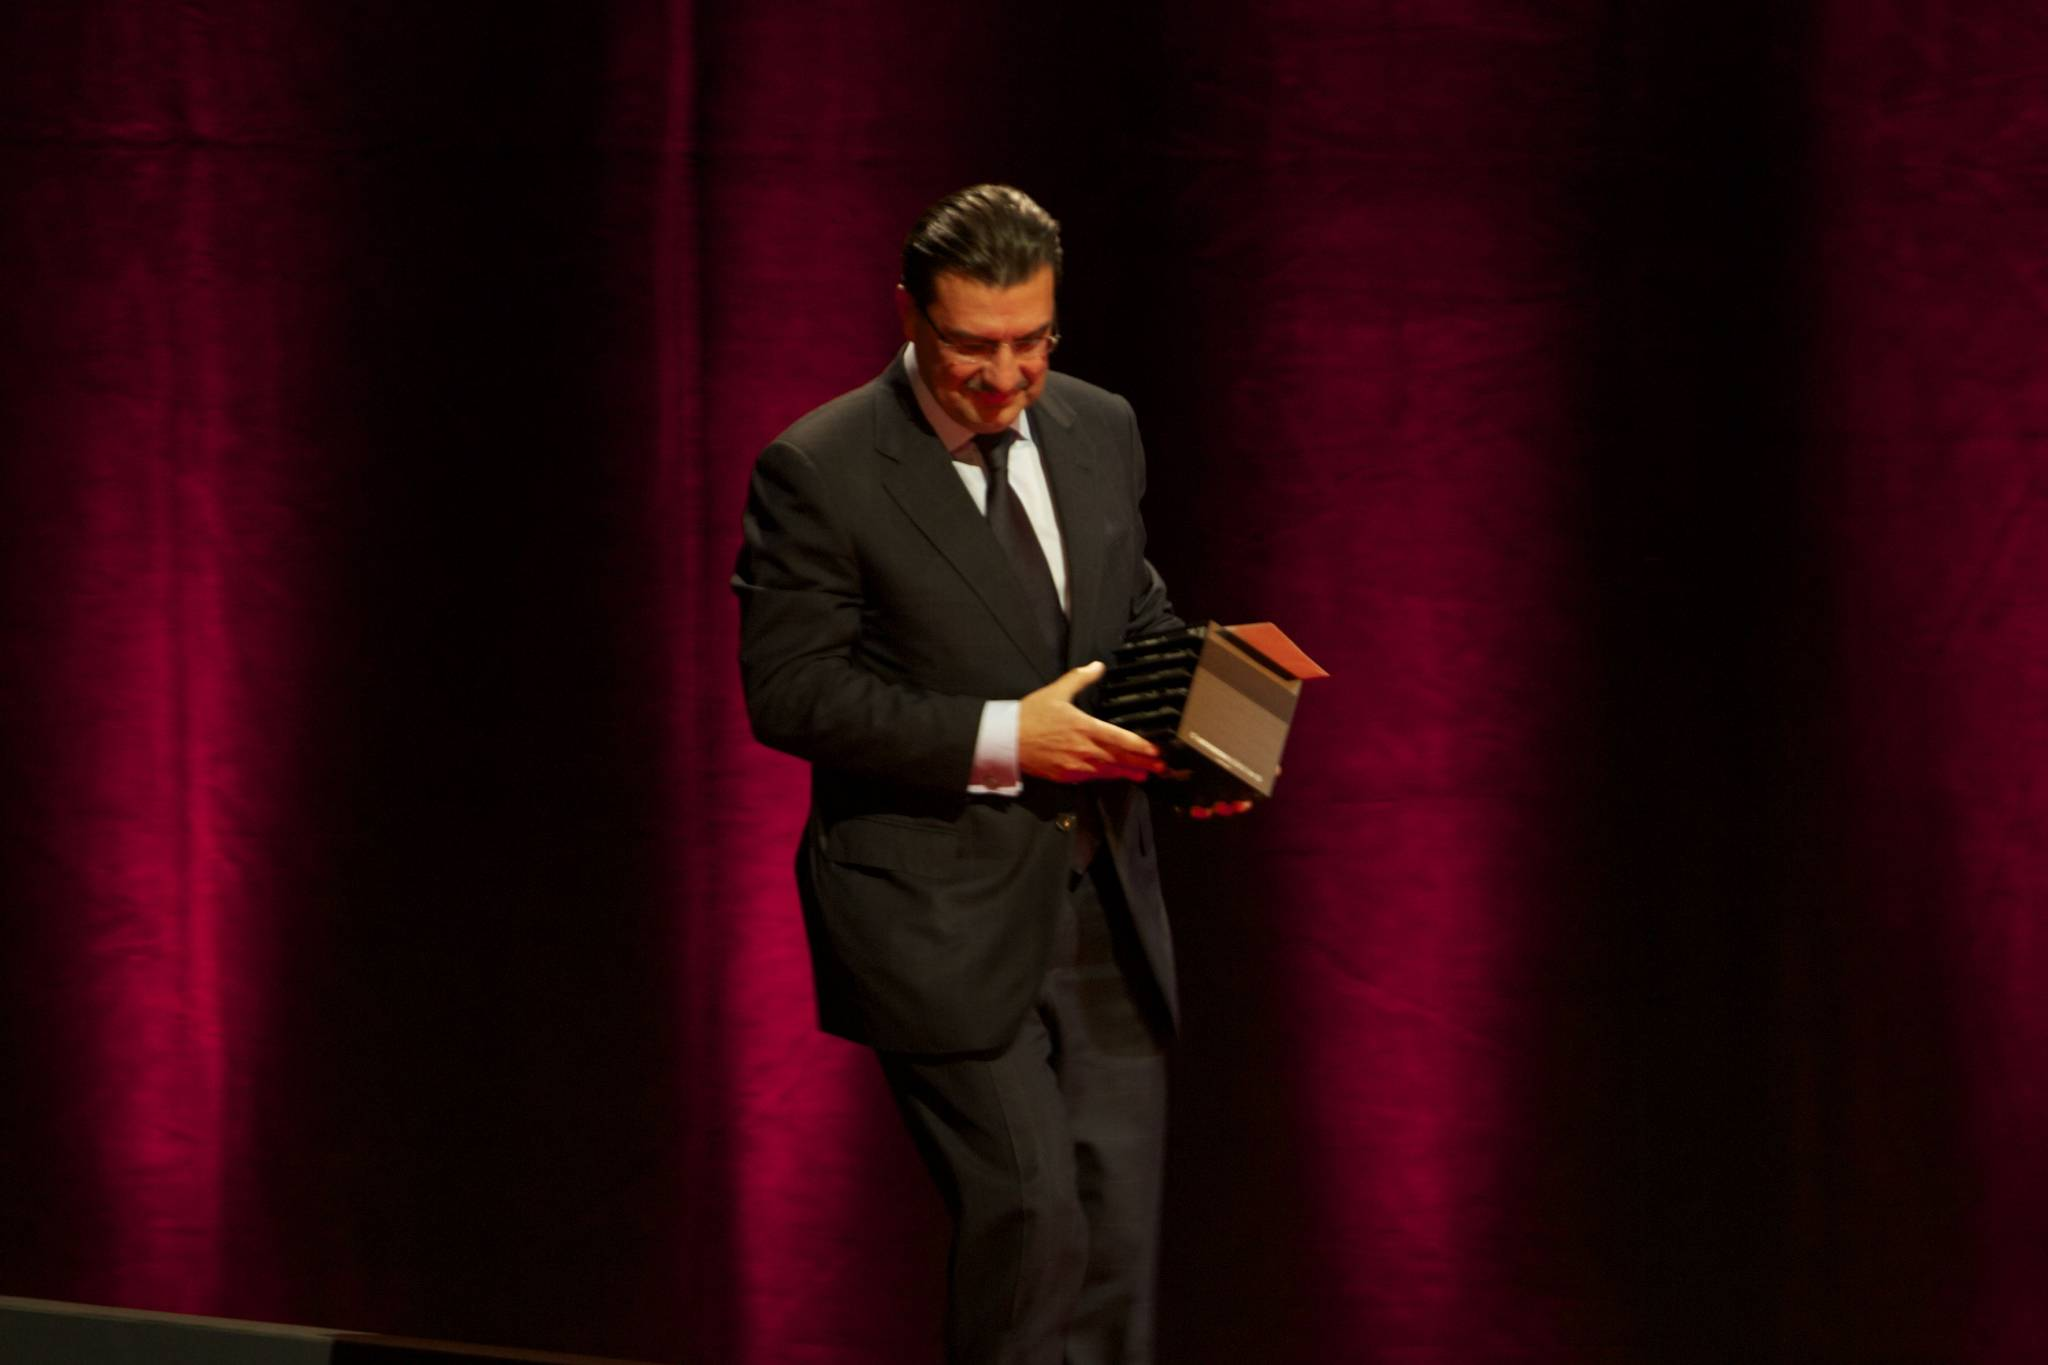 Juan Carlos Torres, CEO of Vacheron Constantin, 2010 ceremony